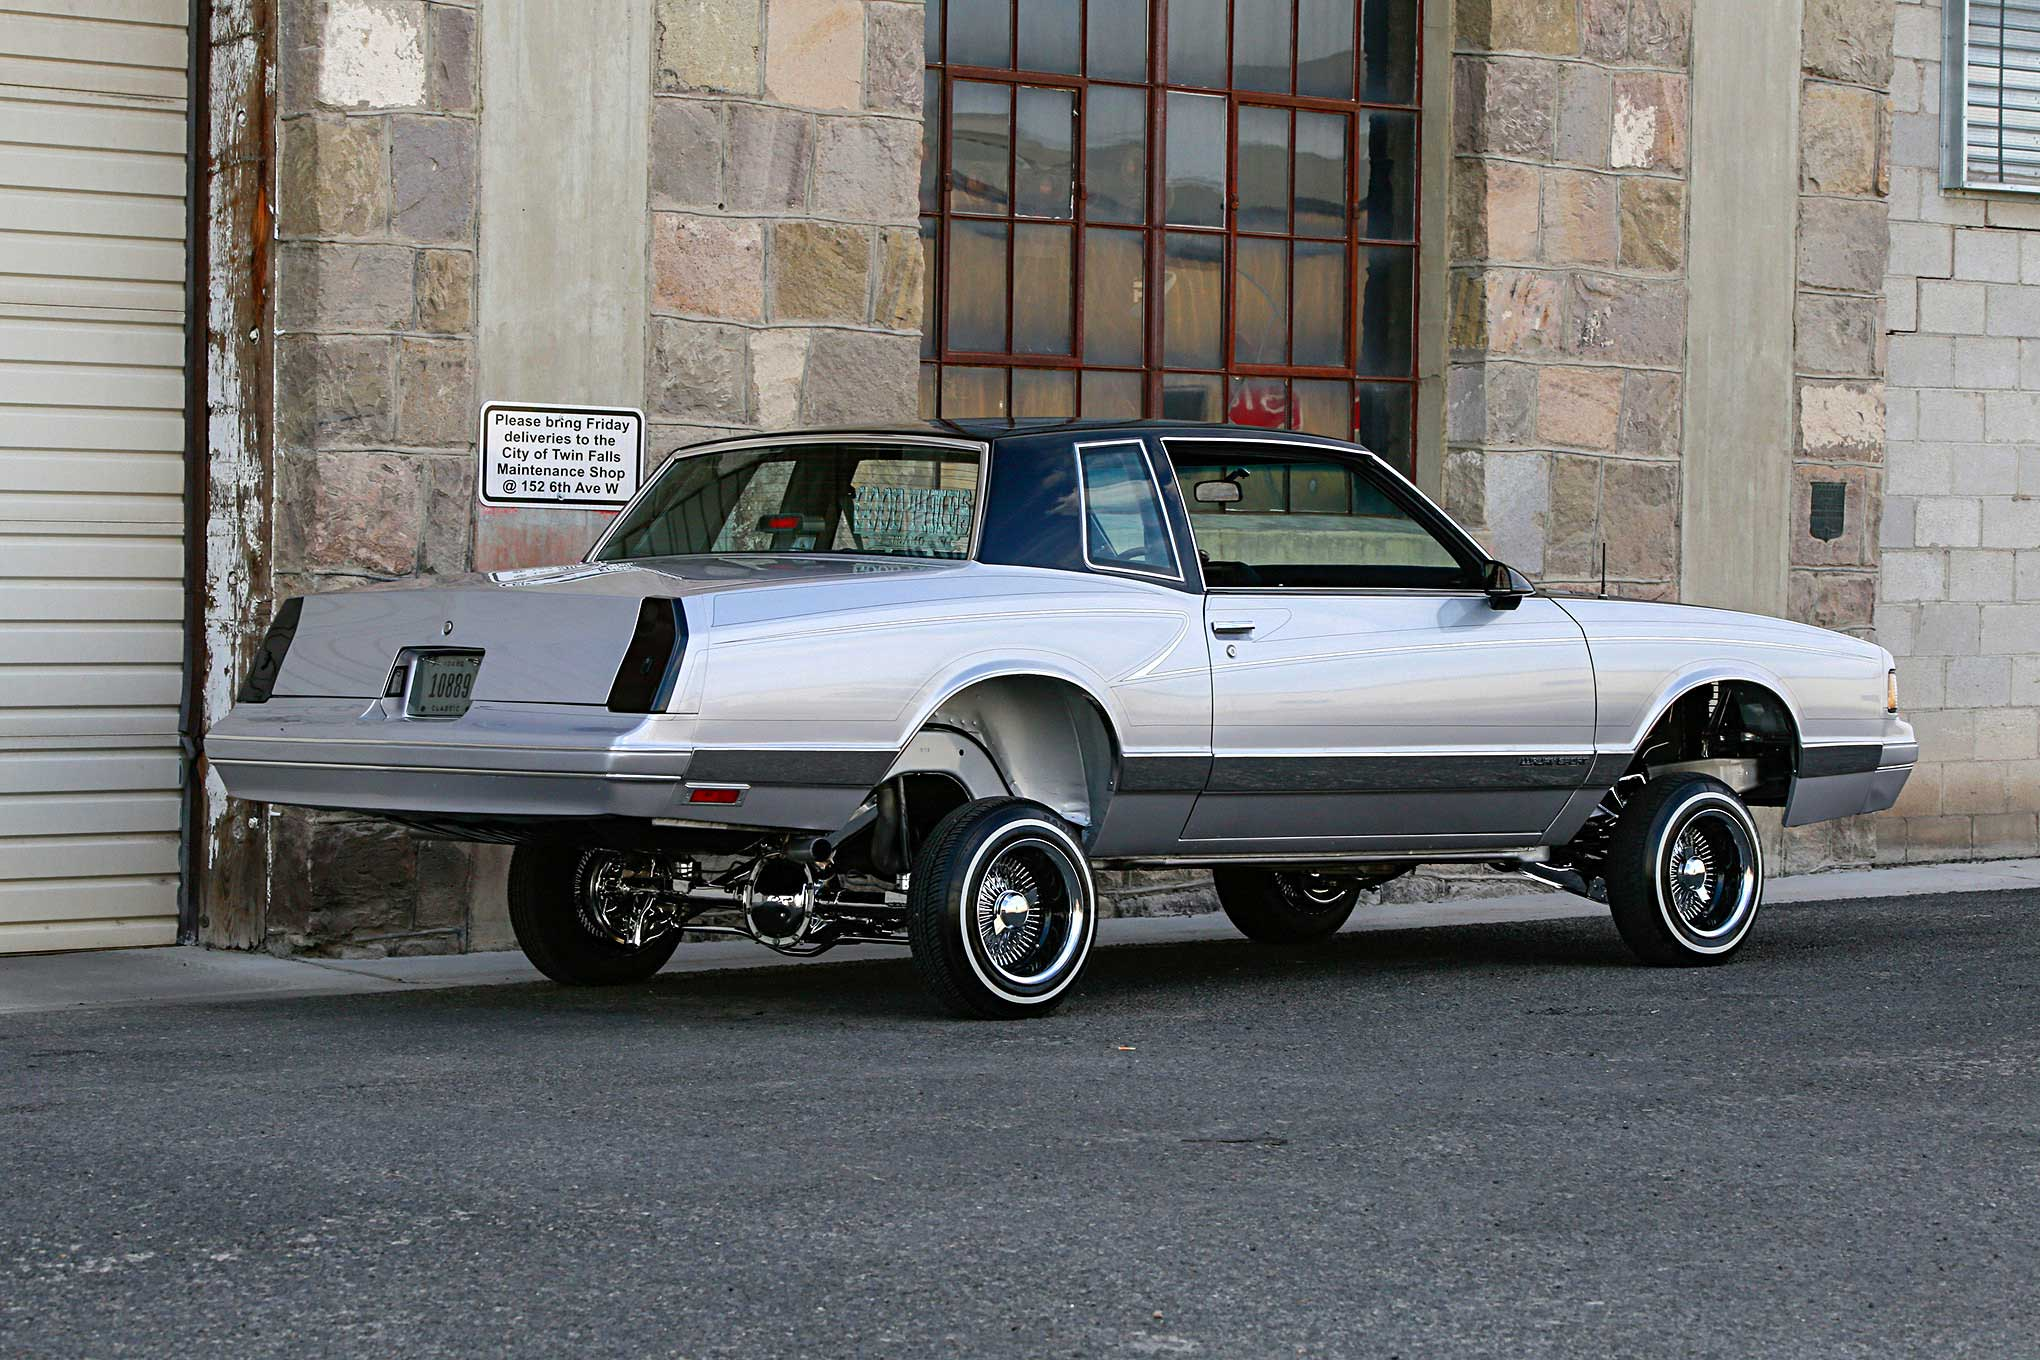 1986 chevy monte carlo luxury sport good times 1986 chevy monte carlo luxury sport